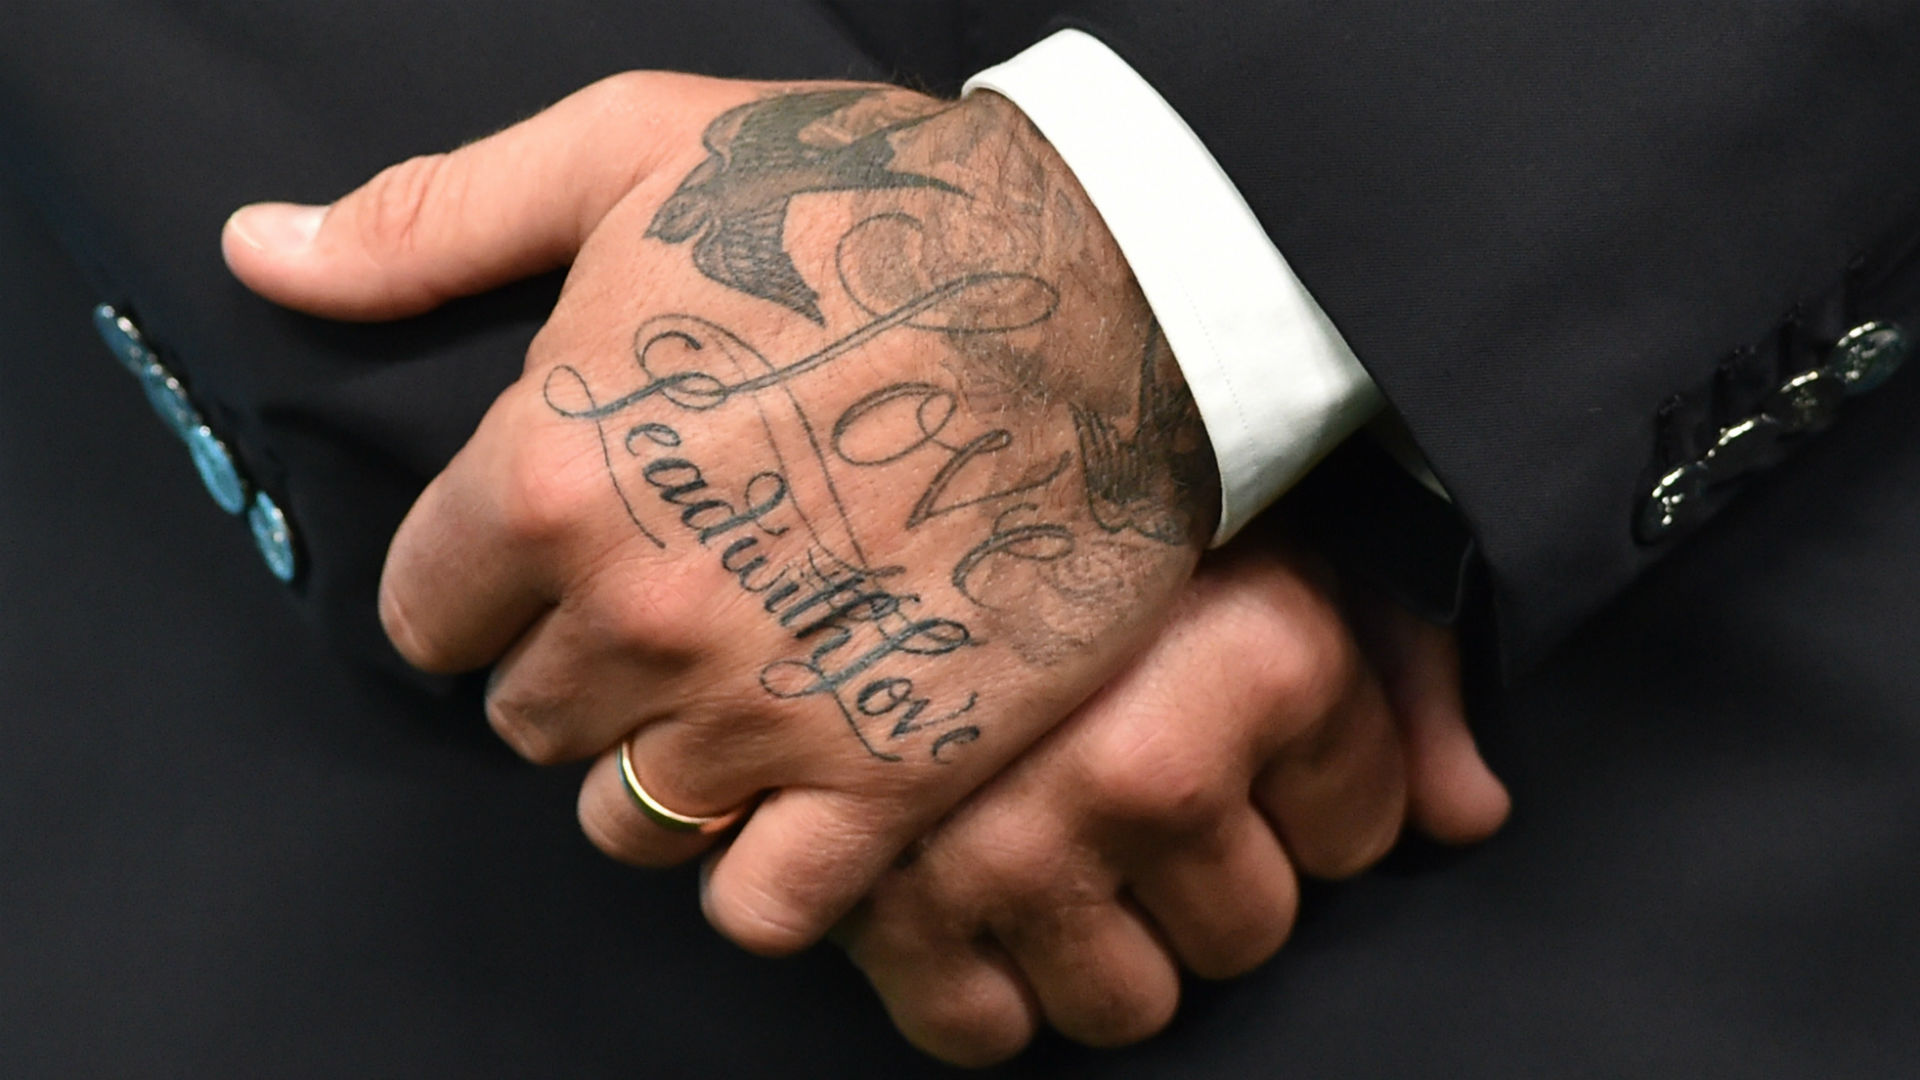 David Beckhams Tattoos Where Are They And What Do Mean